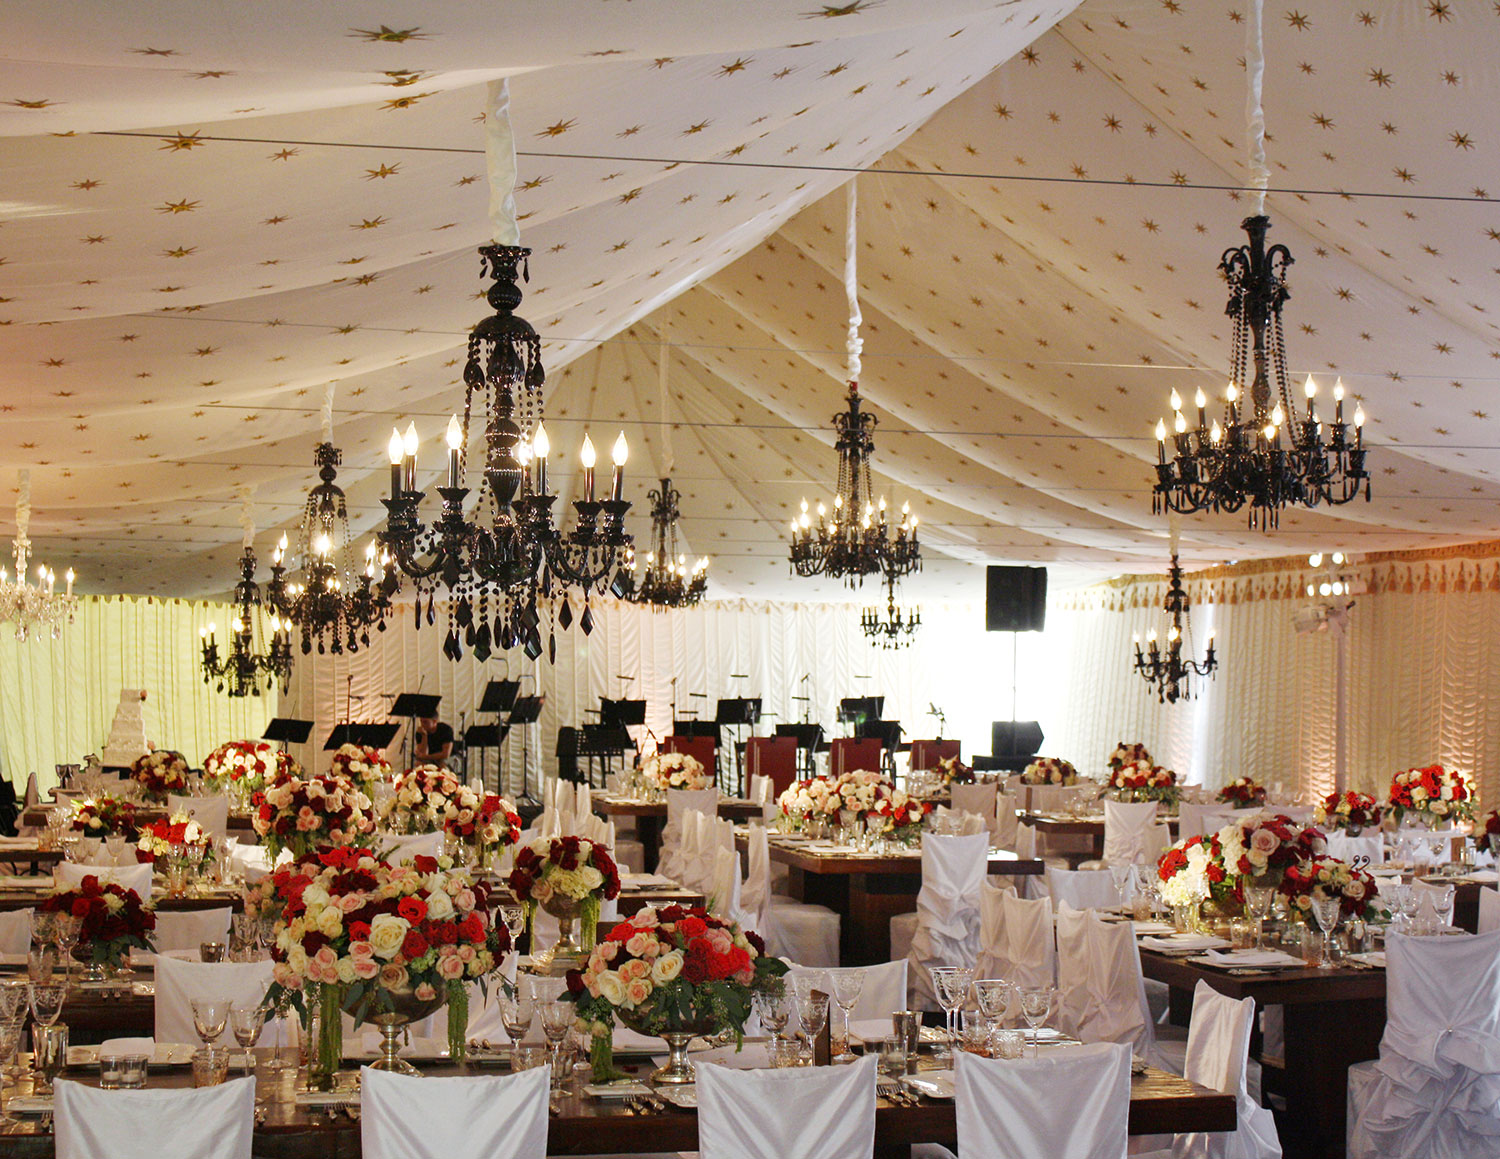 raj-tents-classic-wedding-shannon-doherety-wedding.jpg